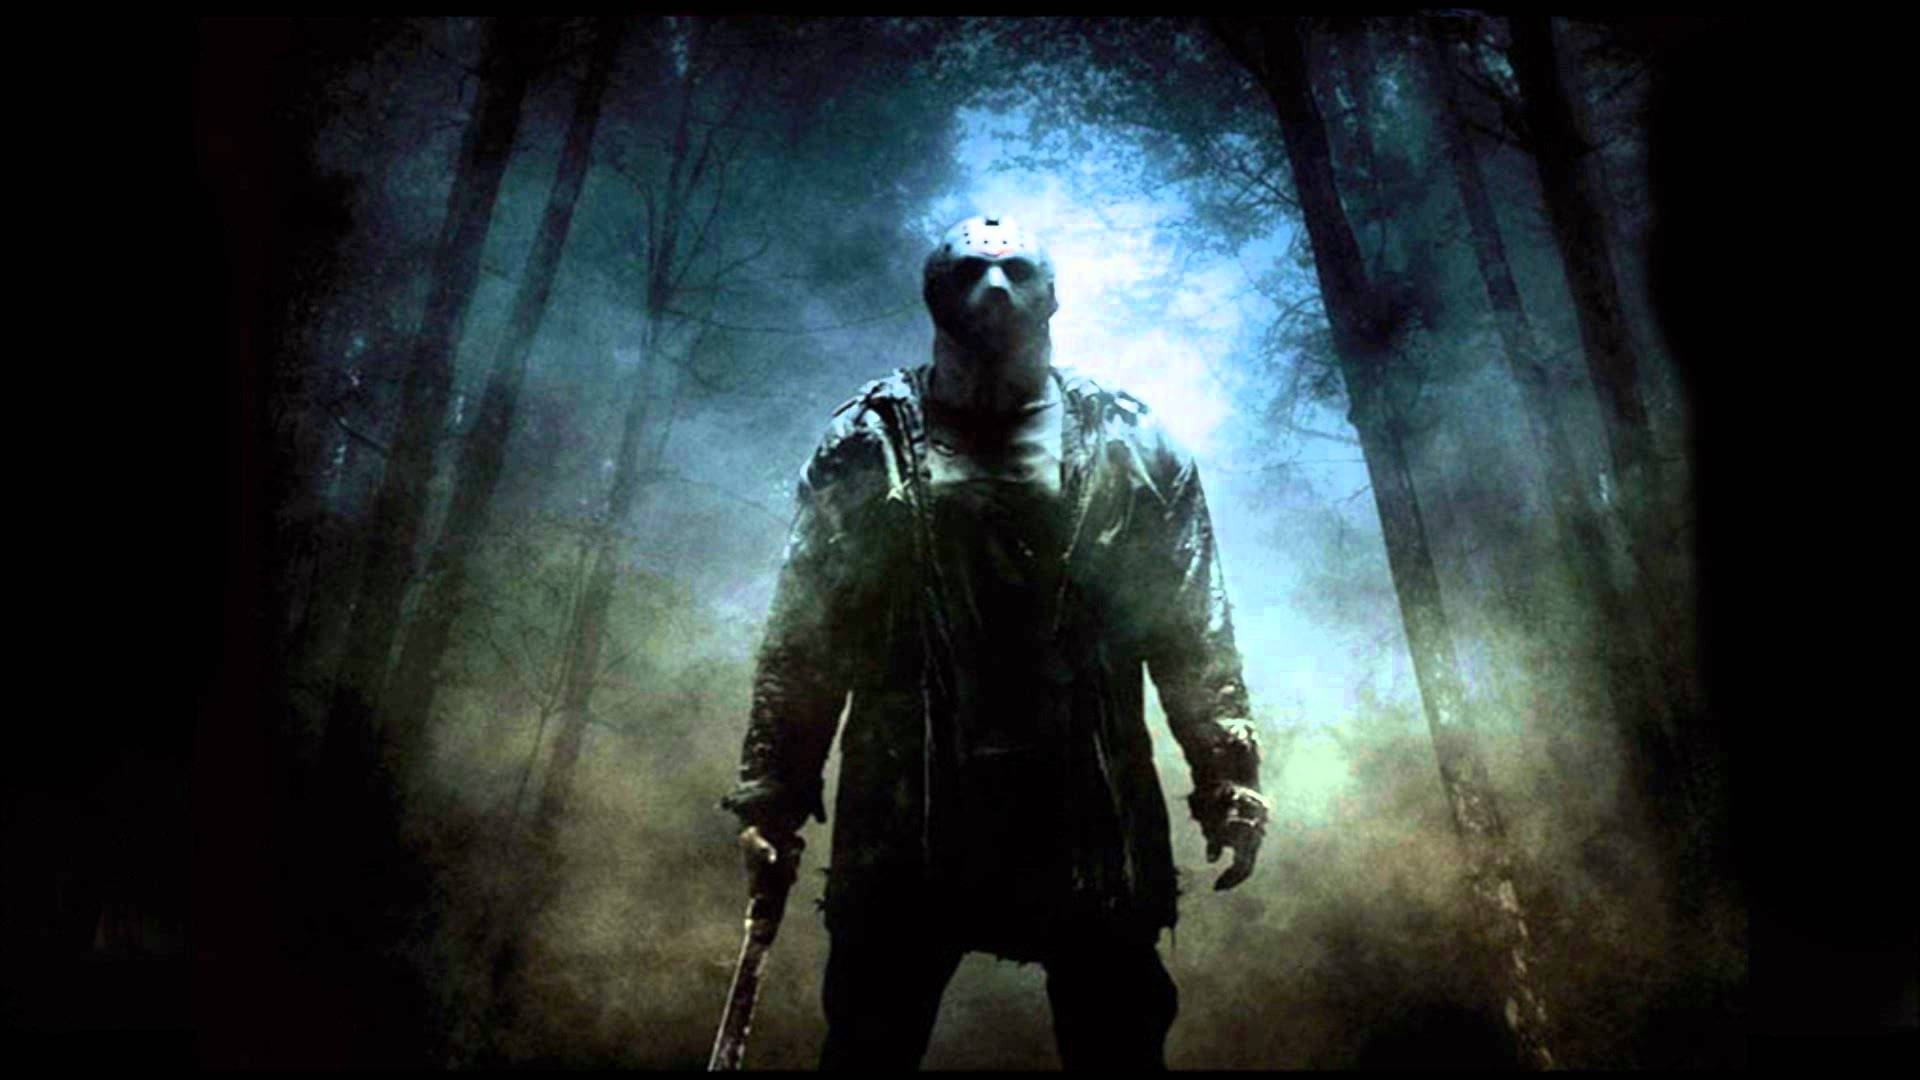 10 New Jason Voorhees Hd Wallpaper FULL HD 1080p For PC Background